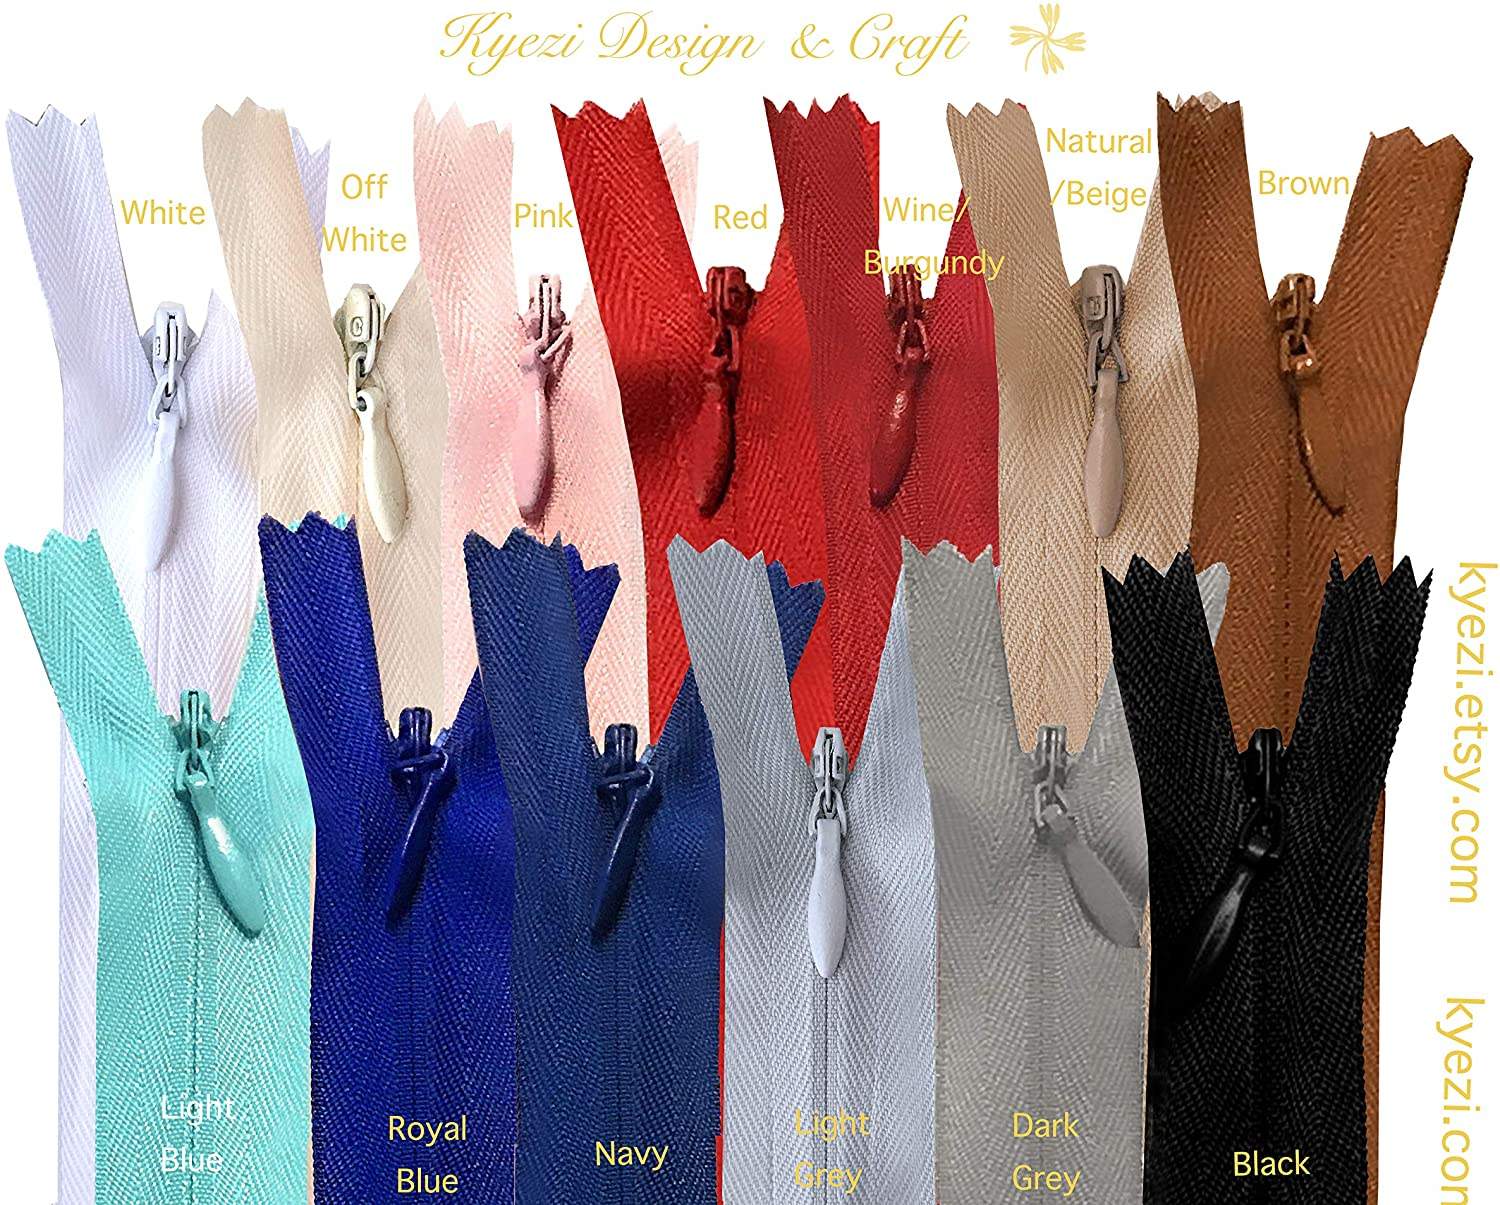 9-22 Inch Nylon Invisible Zippers for Pillow, Dresses, Skirts, Pants, Tailor, Sewer, Sewing Craft (Mixed Colors, 22 inch - 5pcs)